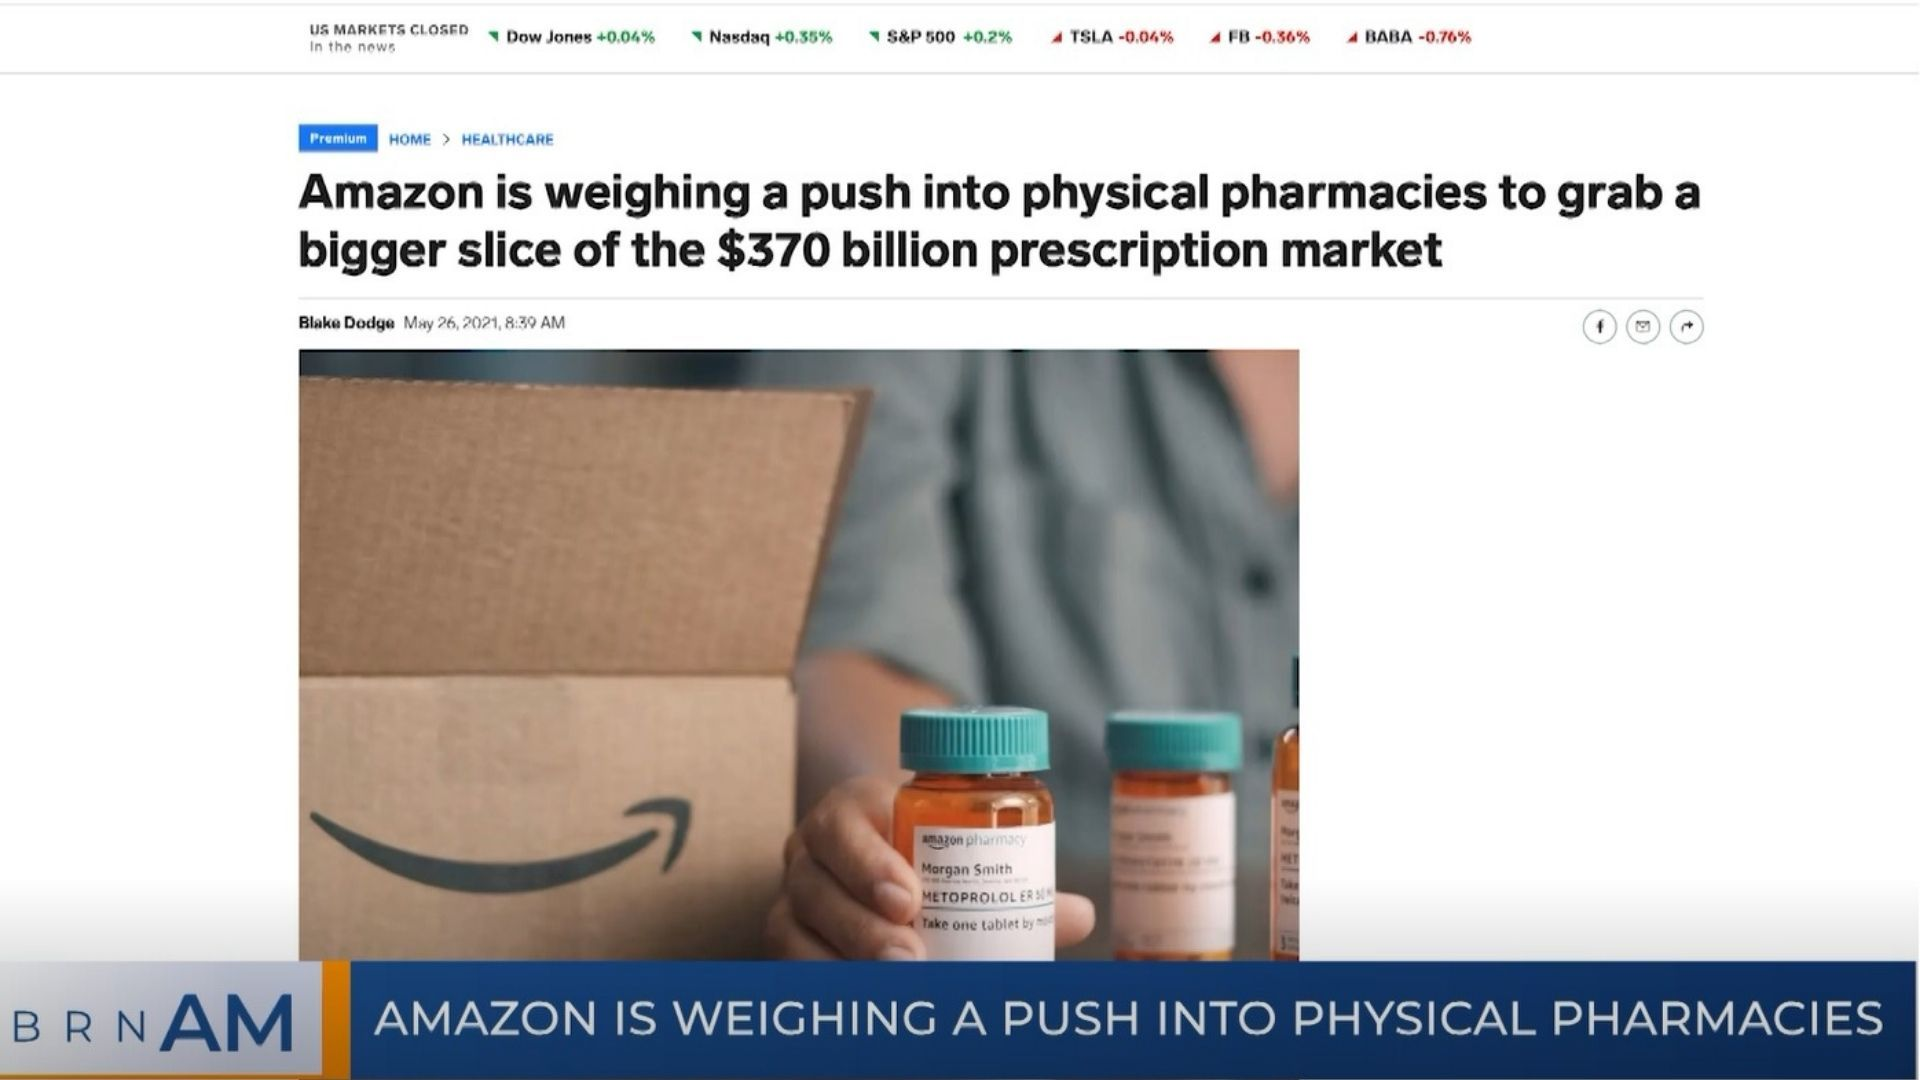 BRN AM   Amazon is weighing a push into physical pharmacies